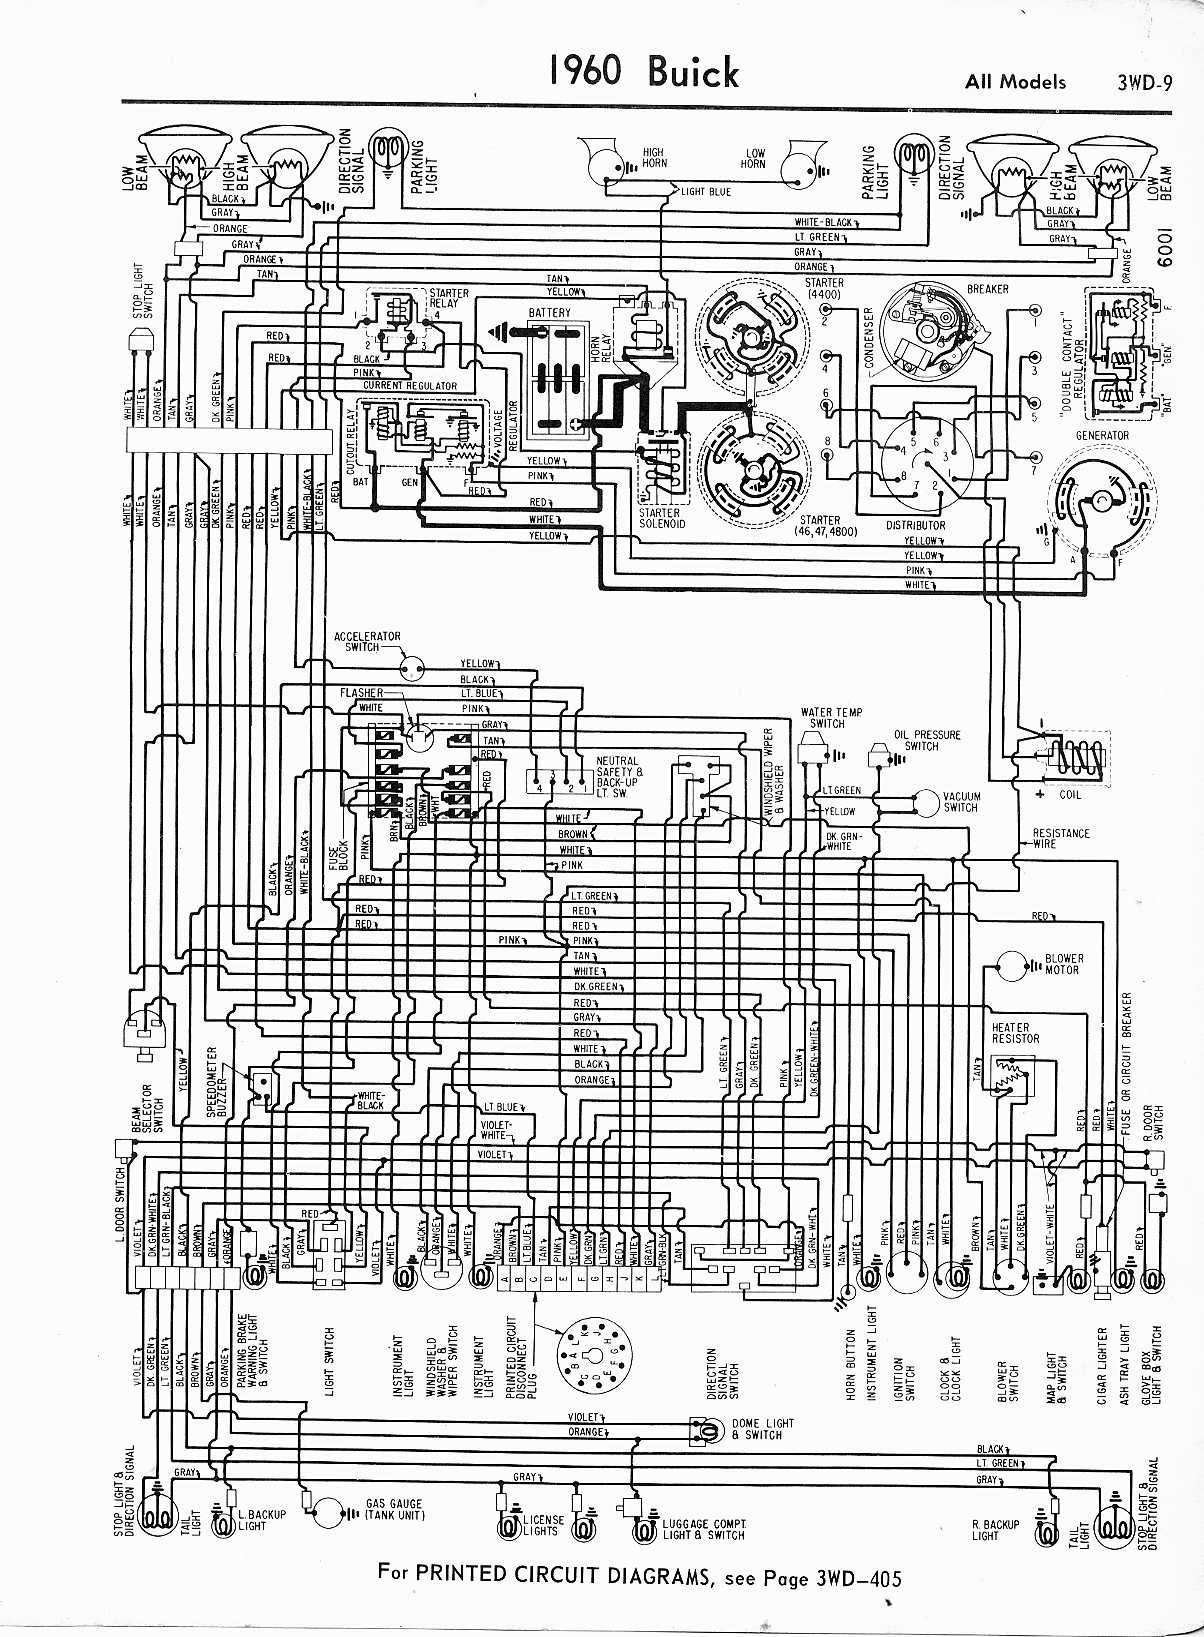 1994 Buick Lesabre Ignition Switch Wiring Diagram